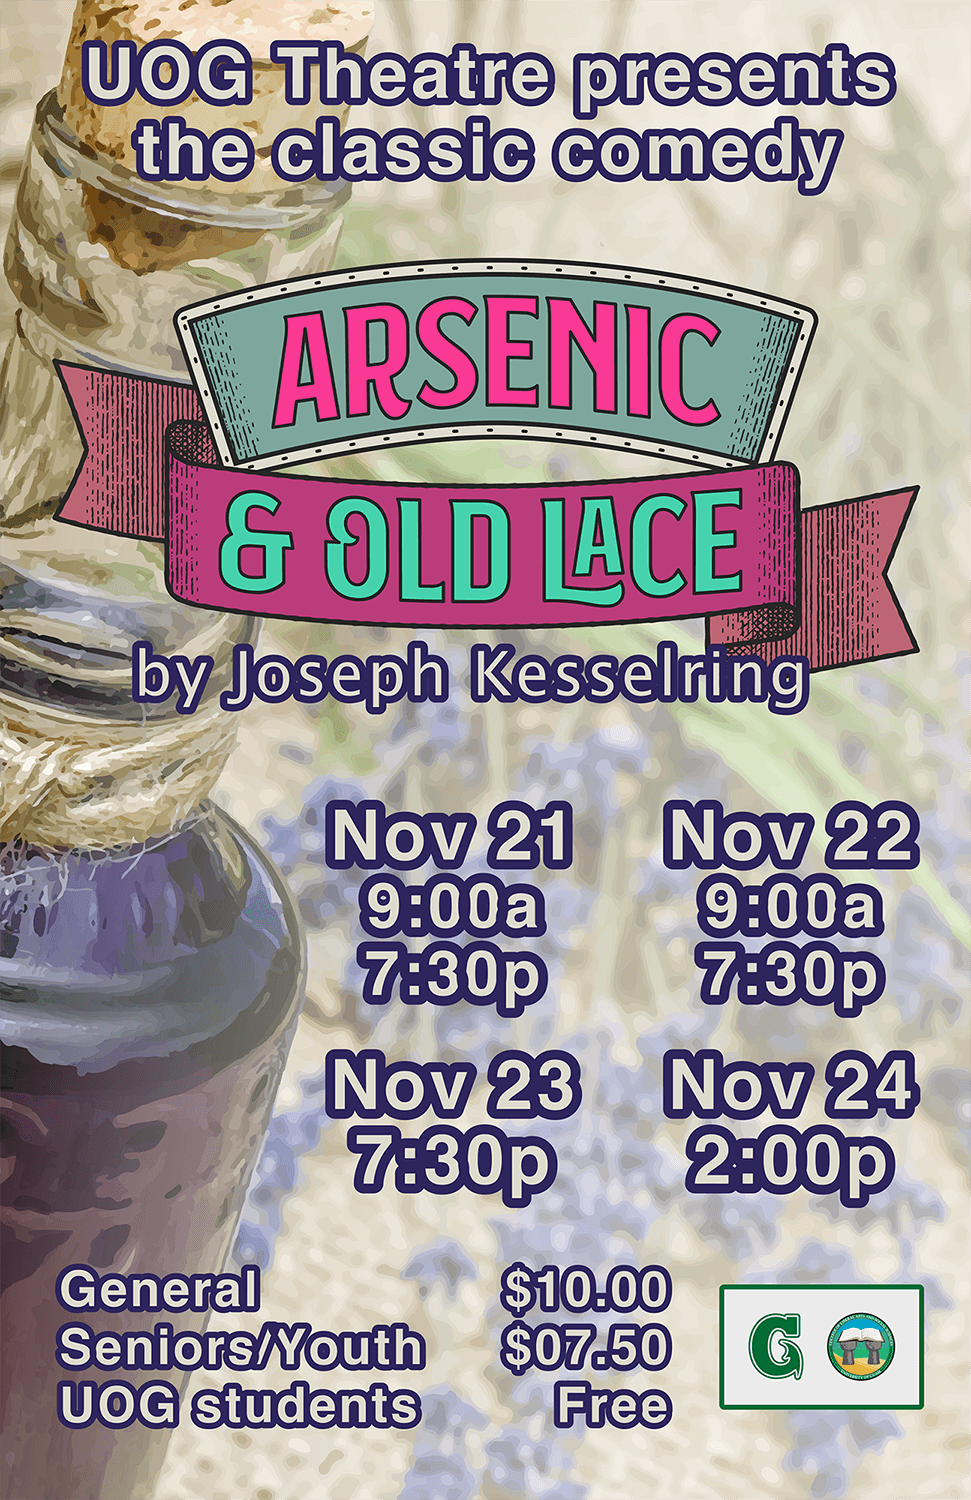 Laugh out loud at UOG Theatre's stage production of 'Arsenic and Old Lace'